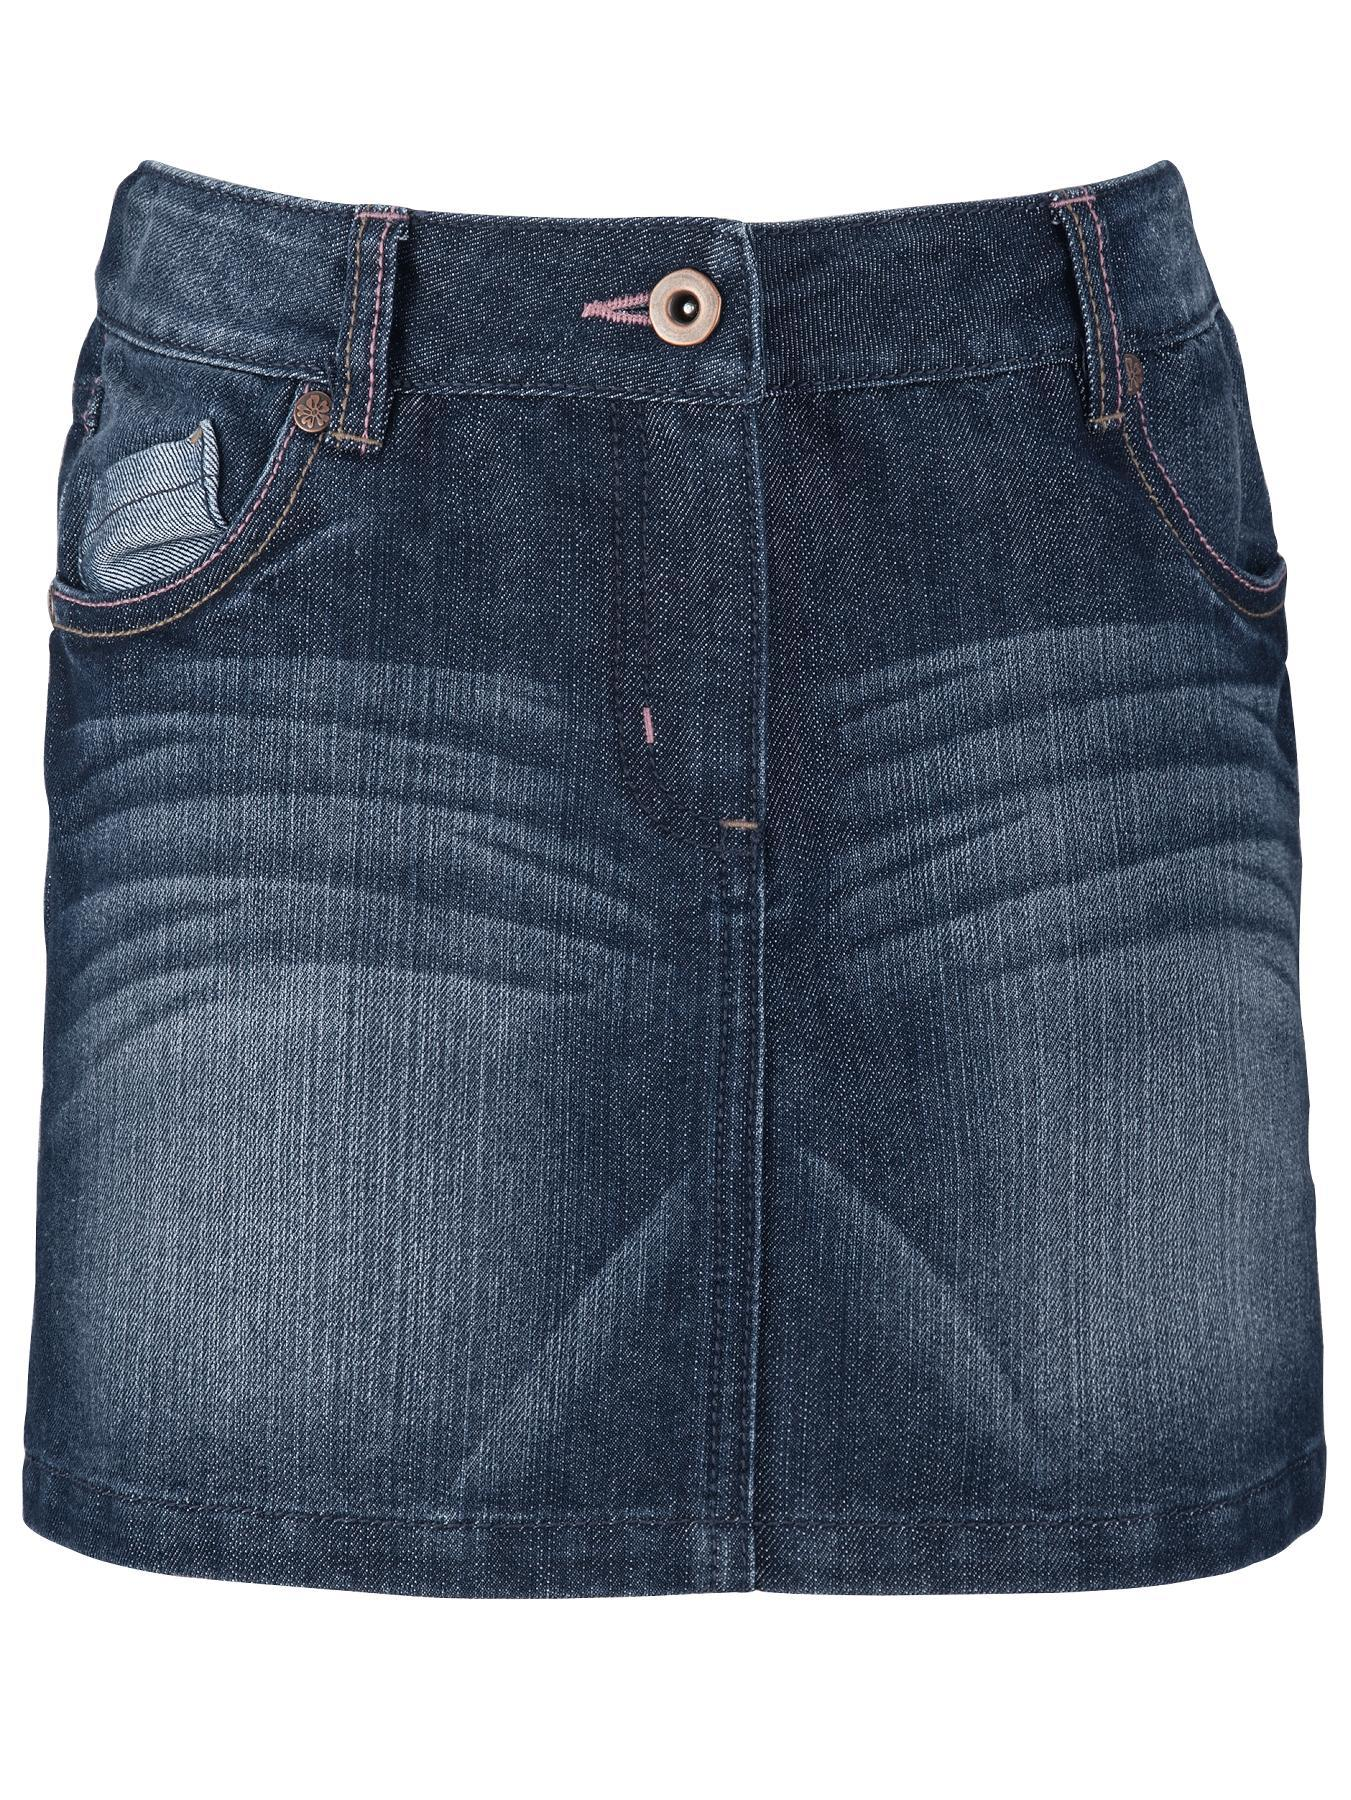 Freespirit Girls Dark Wash Denim Skirt